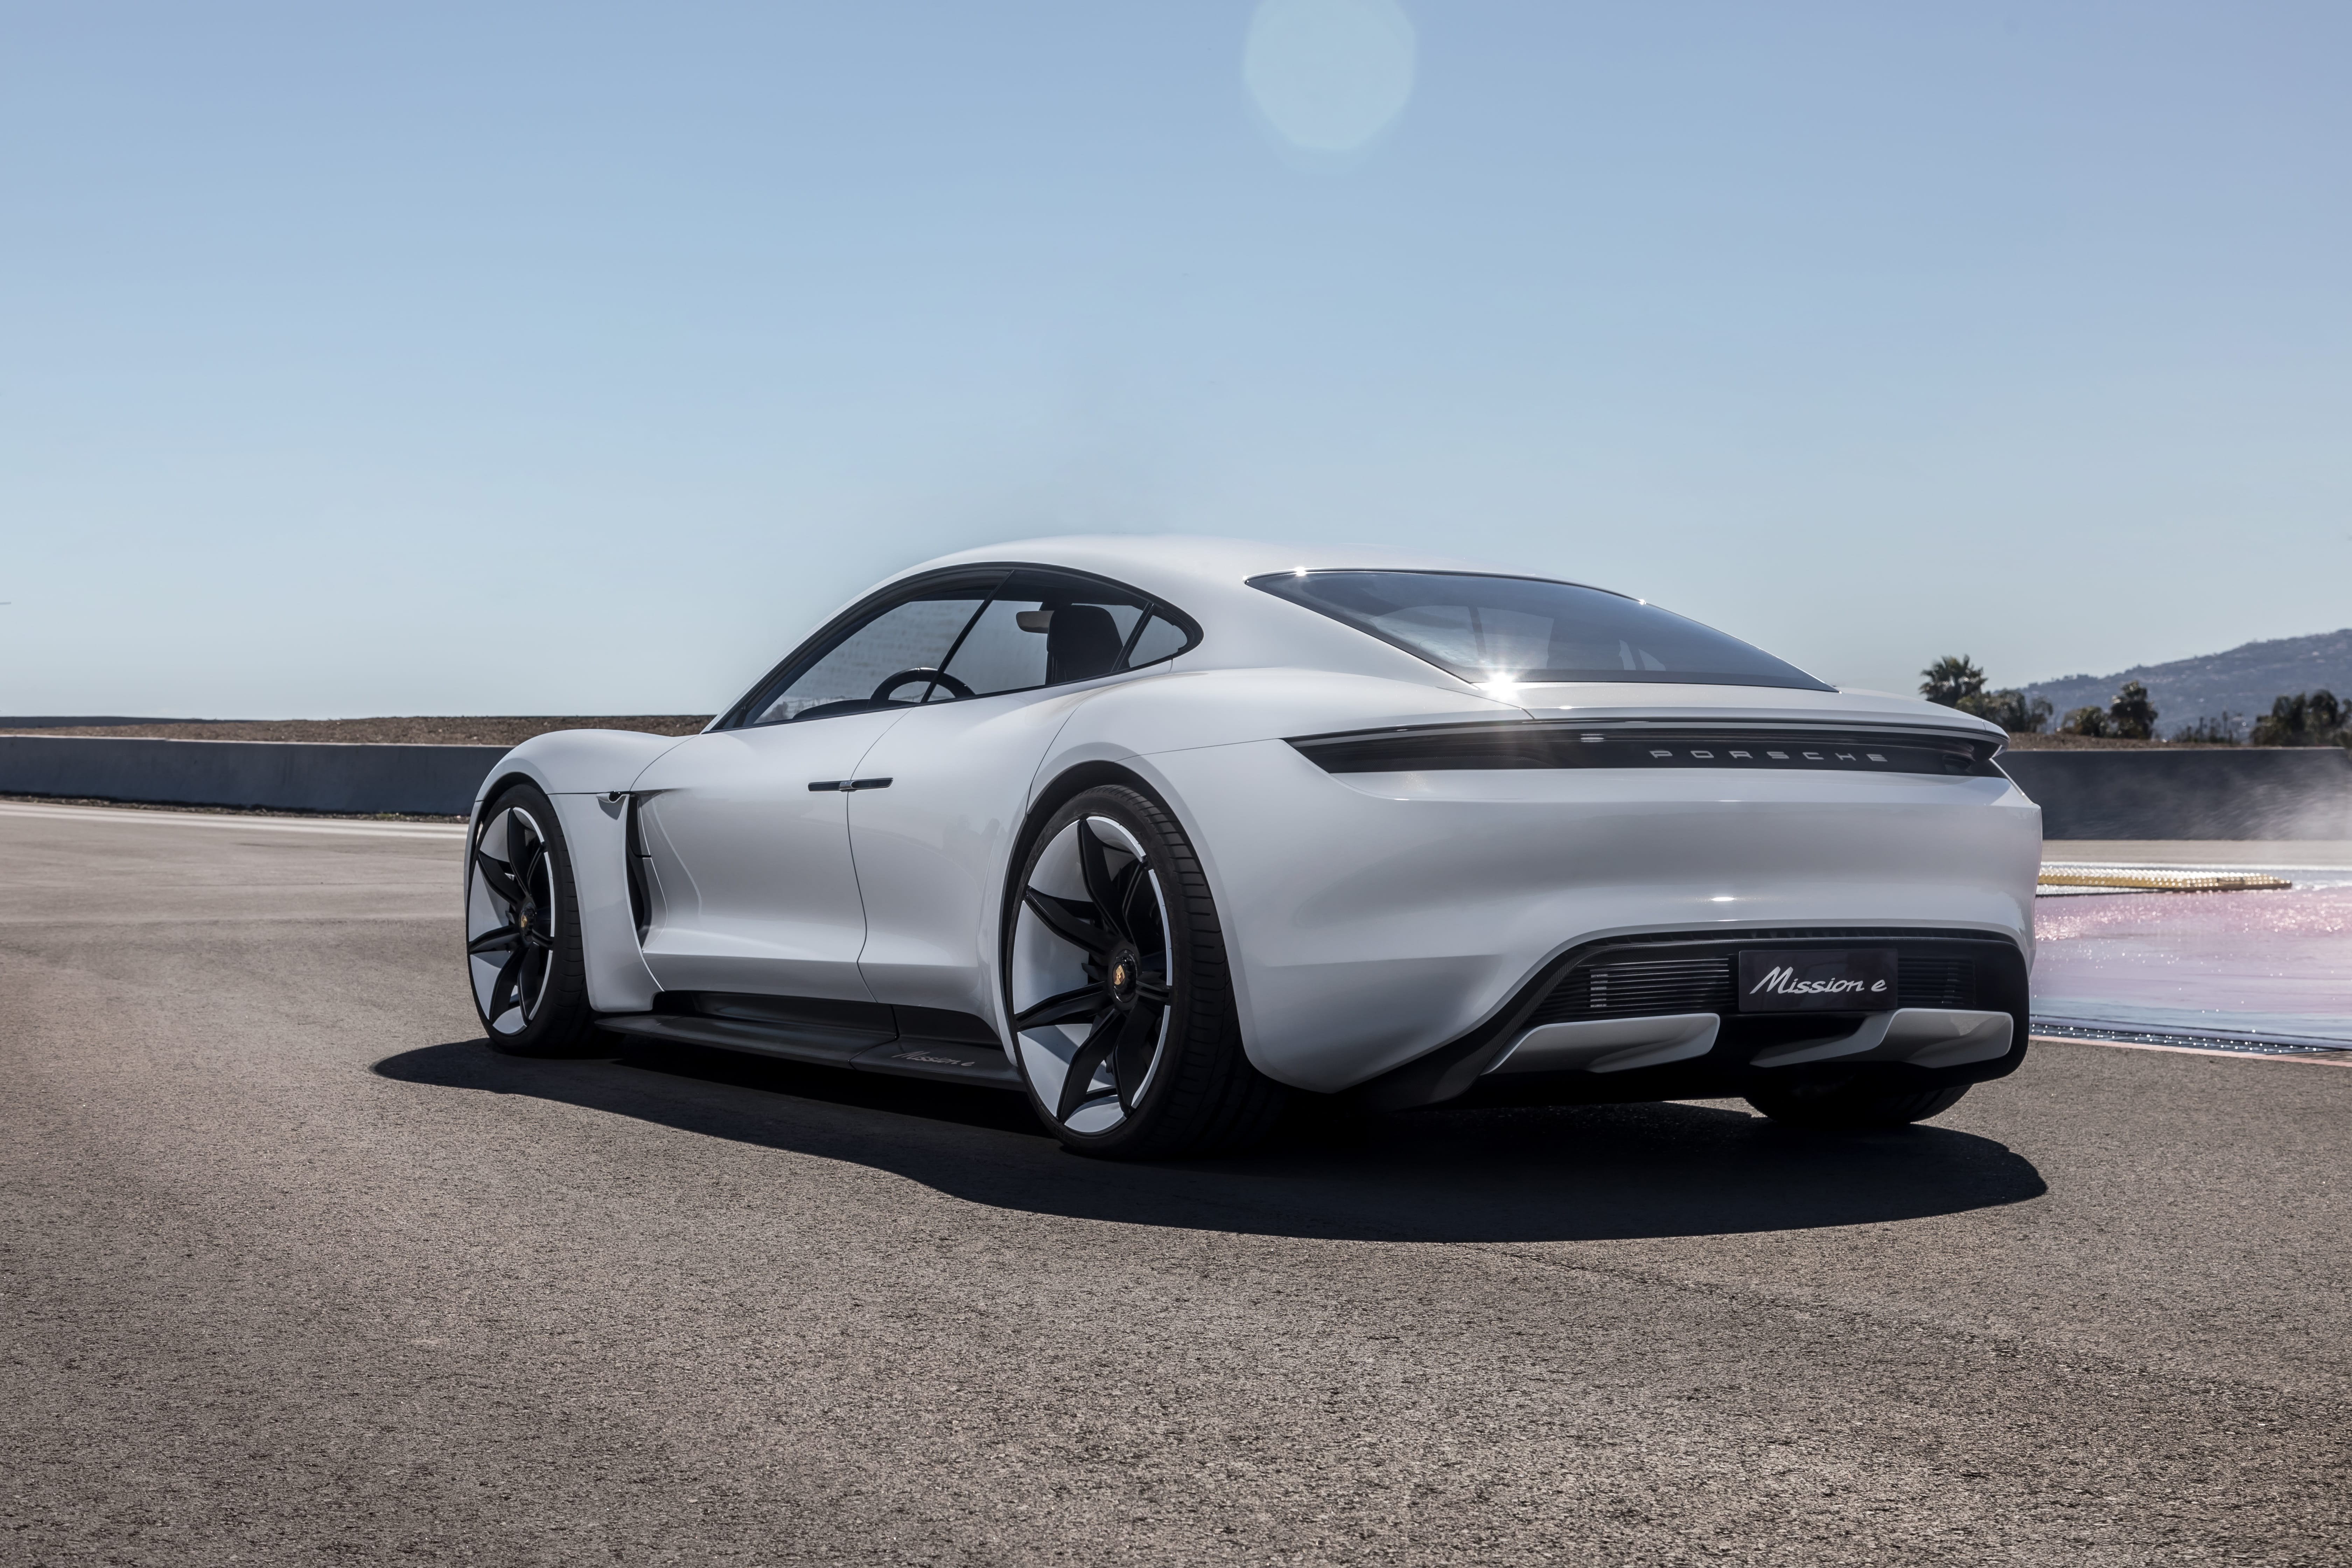 Porsche Taycan - Mission E Gets a New Name